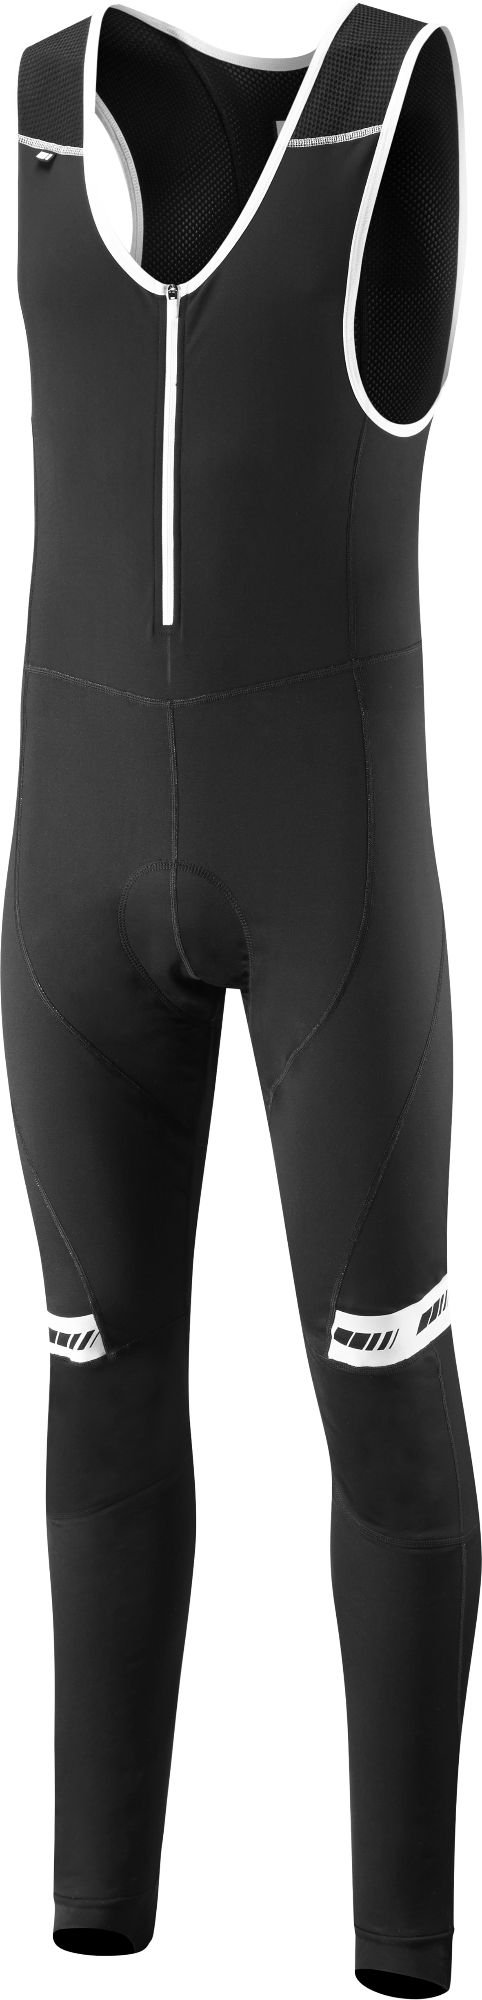 Madison Sportive Shield Softshell Mens Bib Tights with Pad